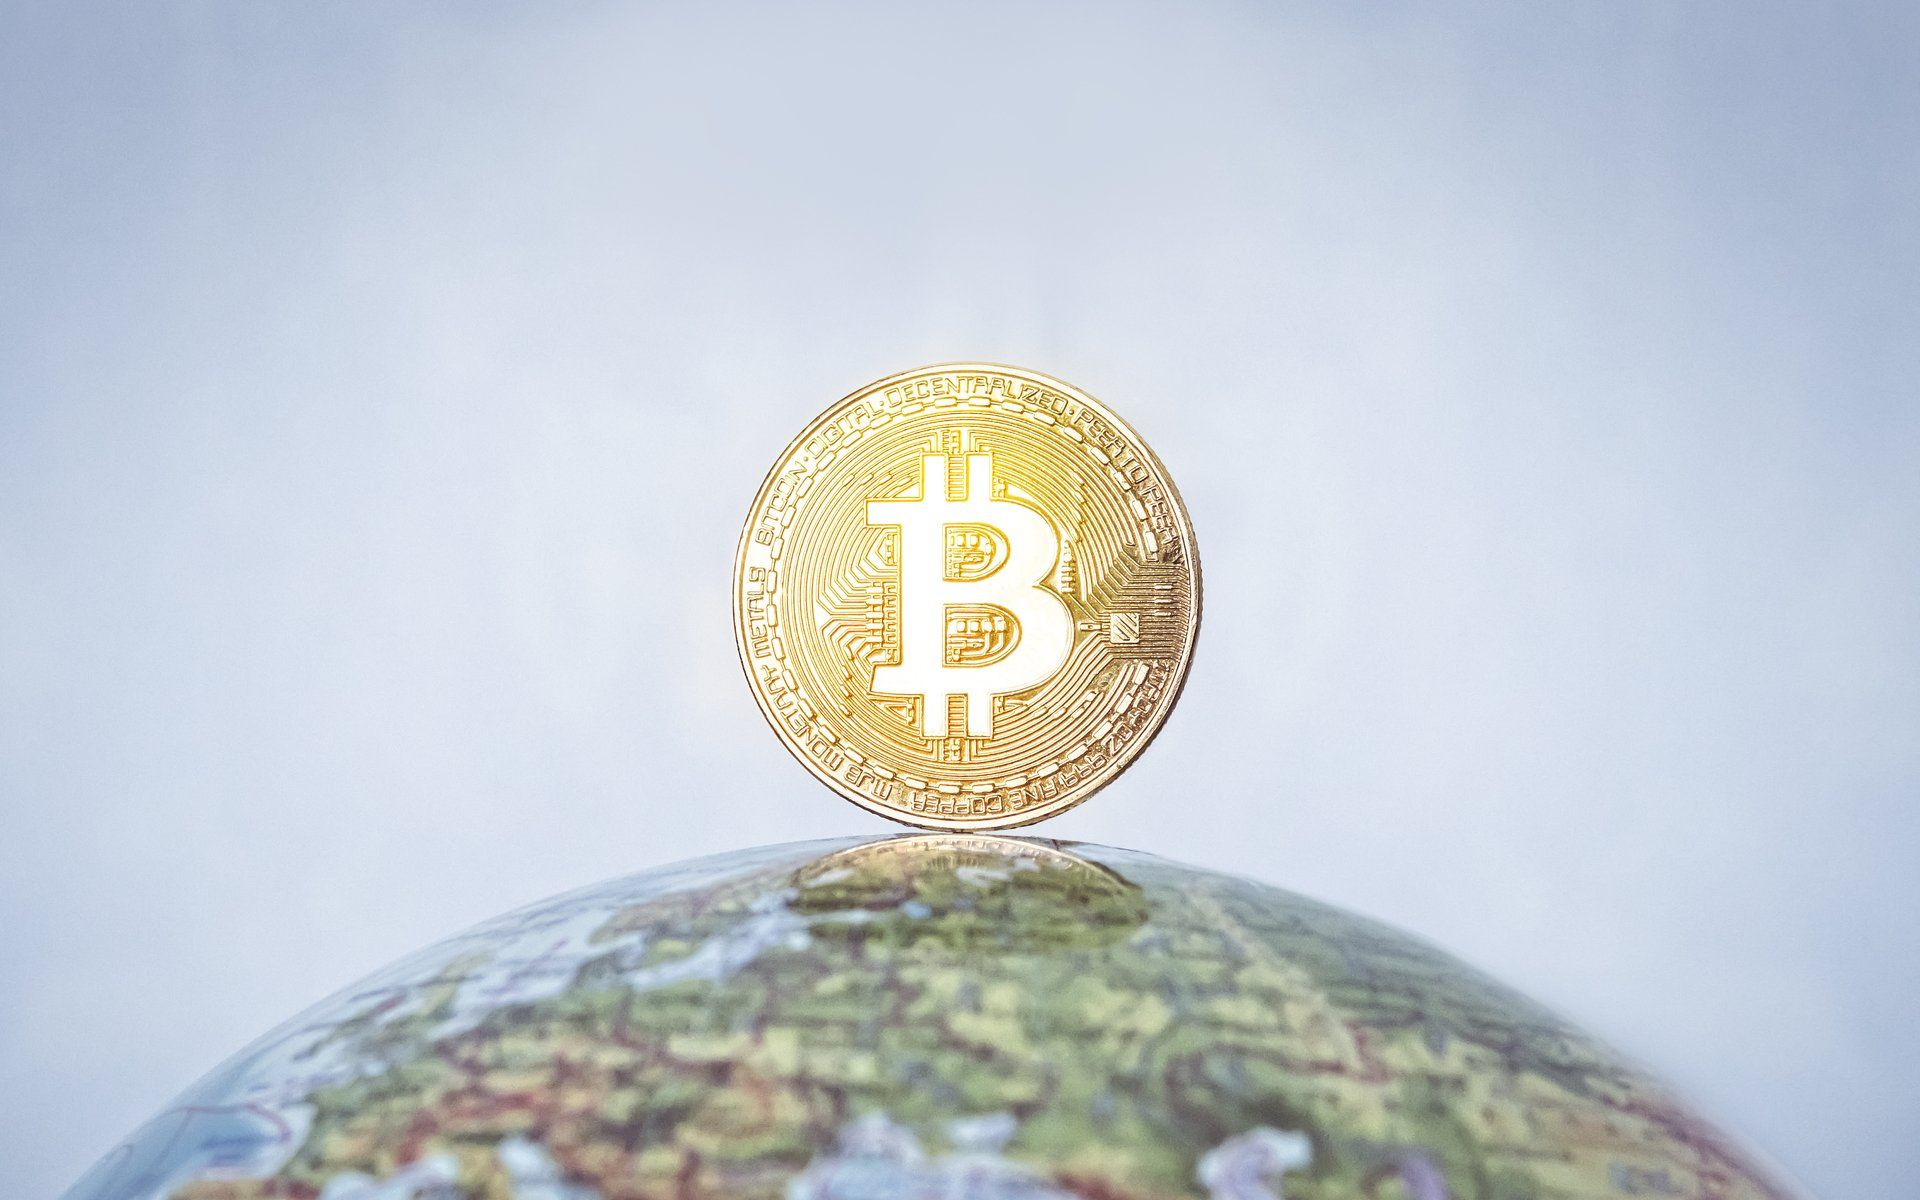 The Entire Cryptocurrency Market is Now 54 Bitcoin